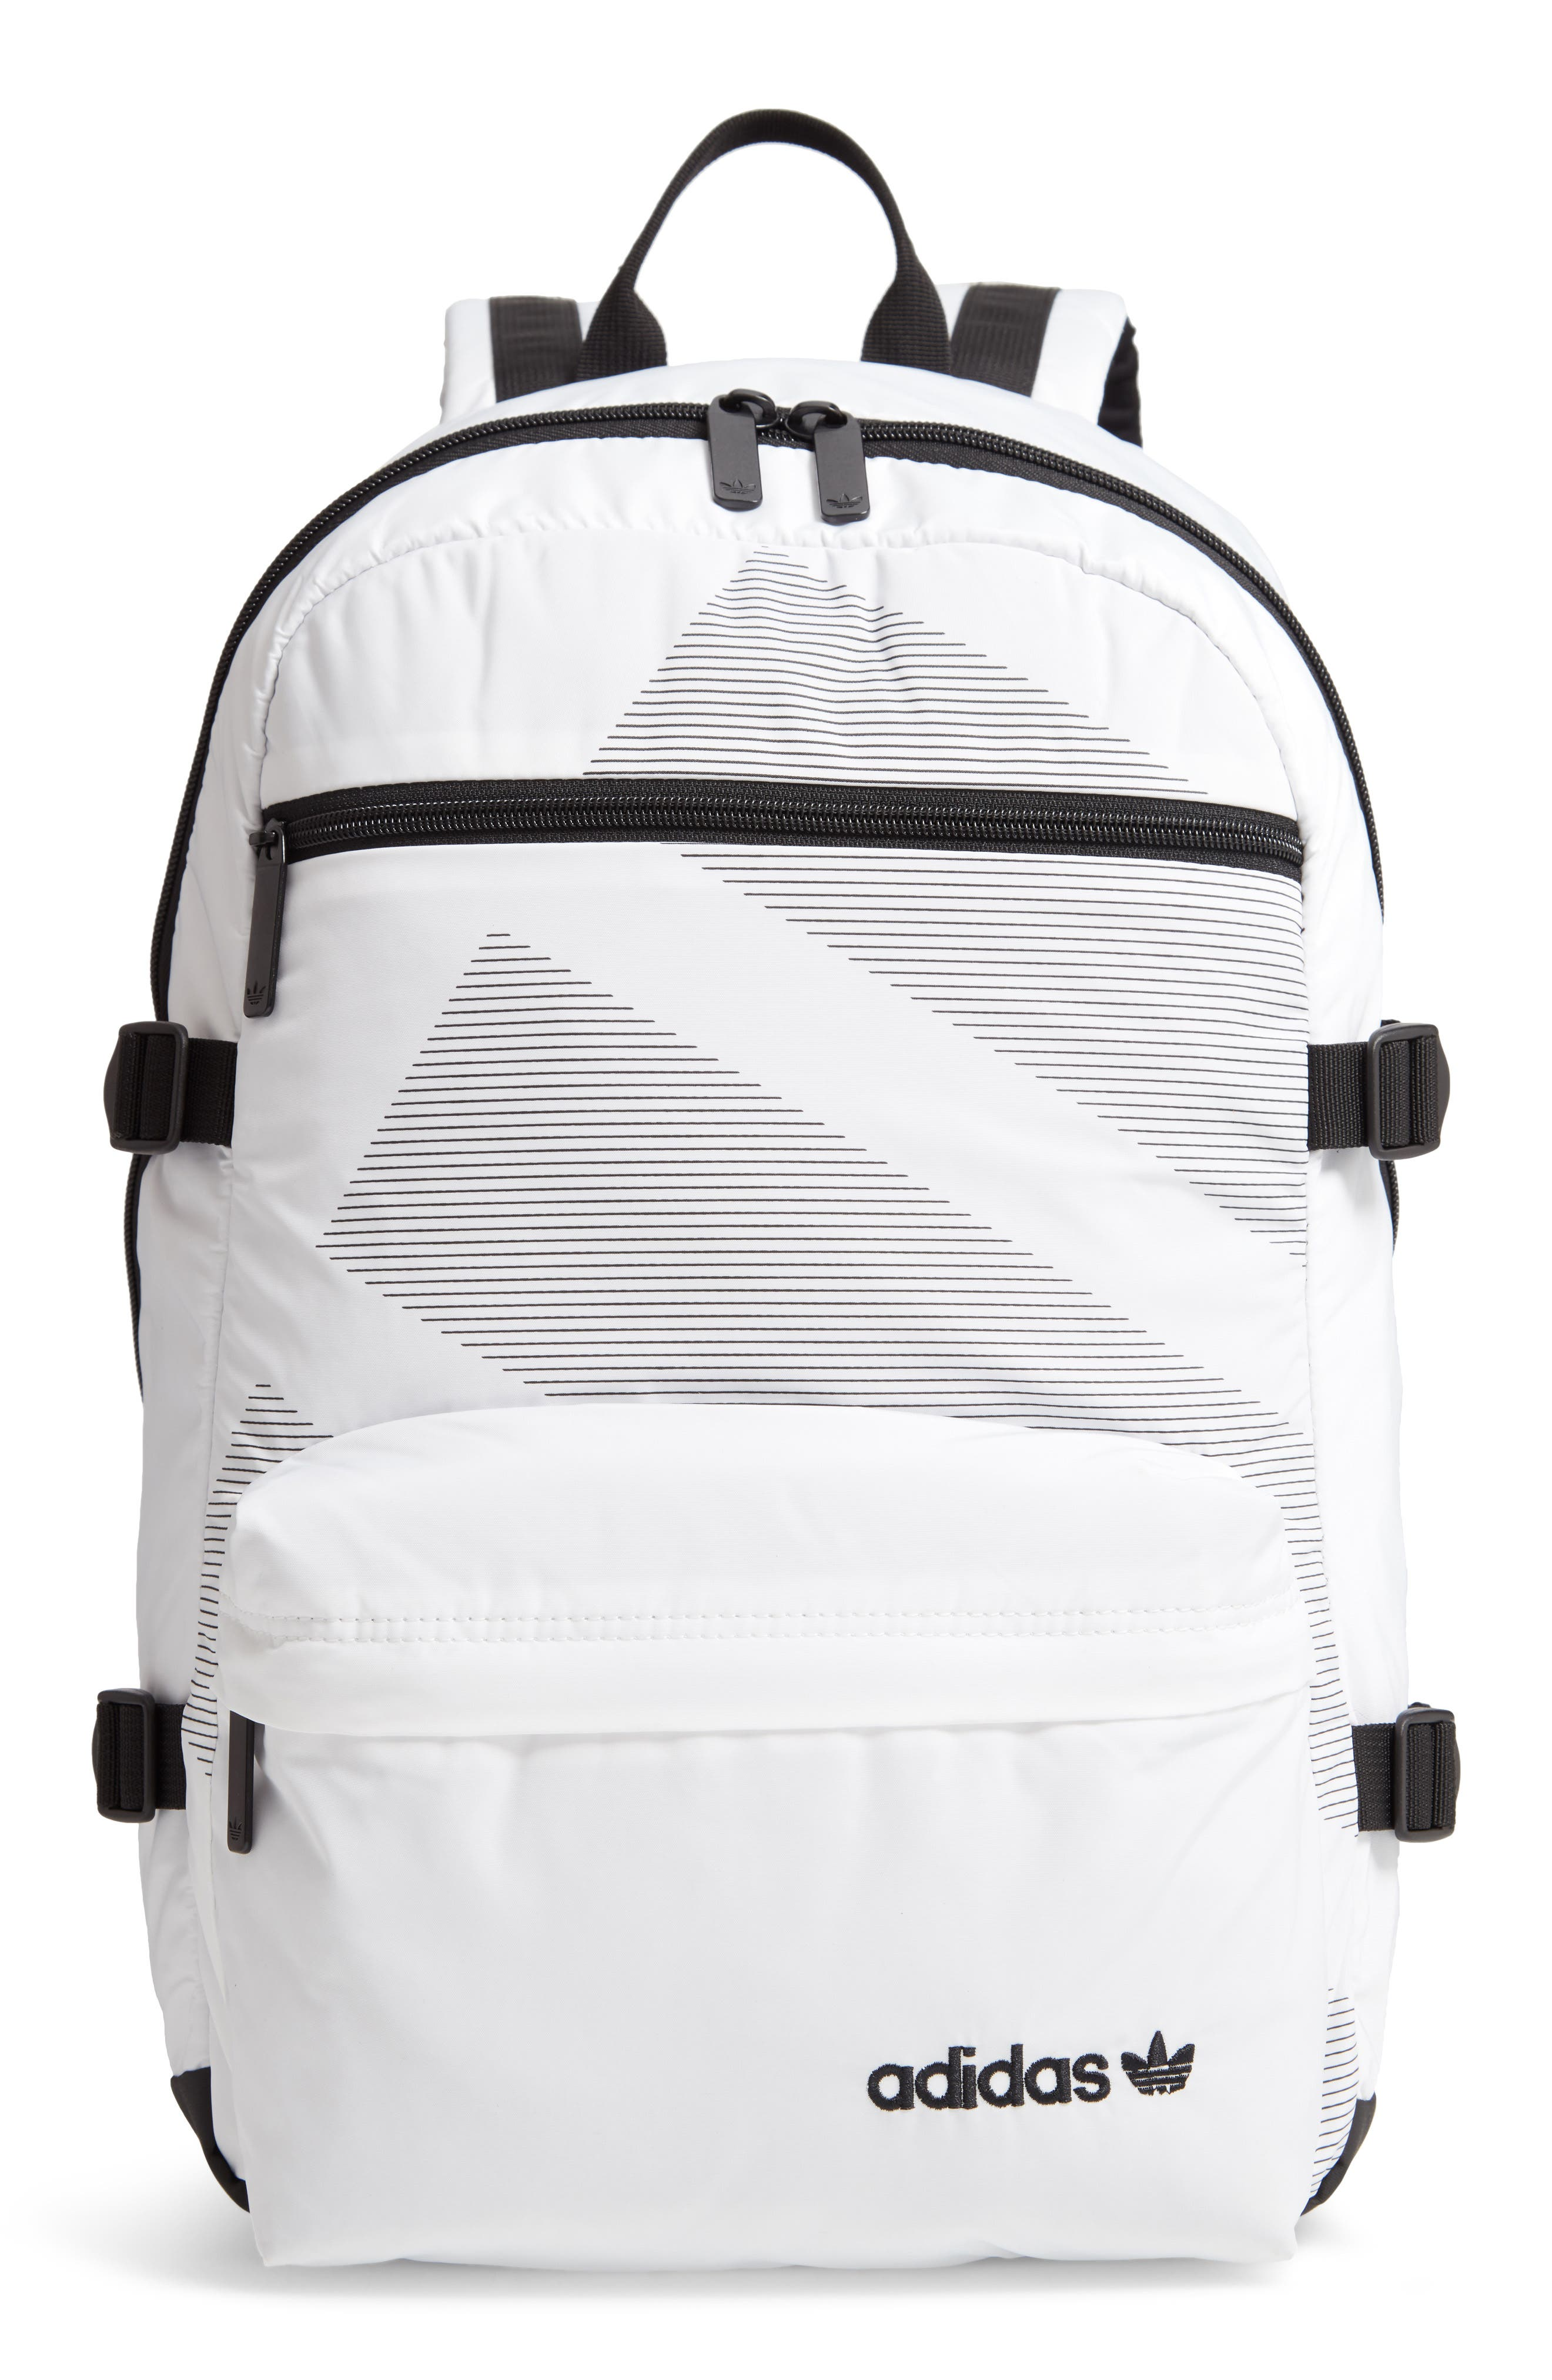 Adidas Originals Eqt Backpack - White